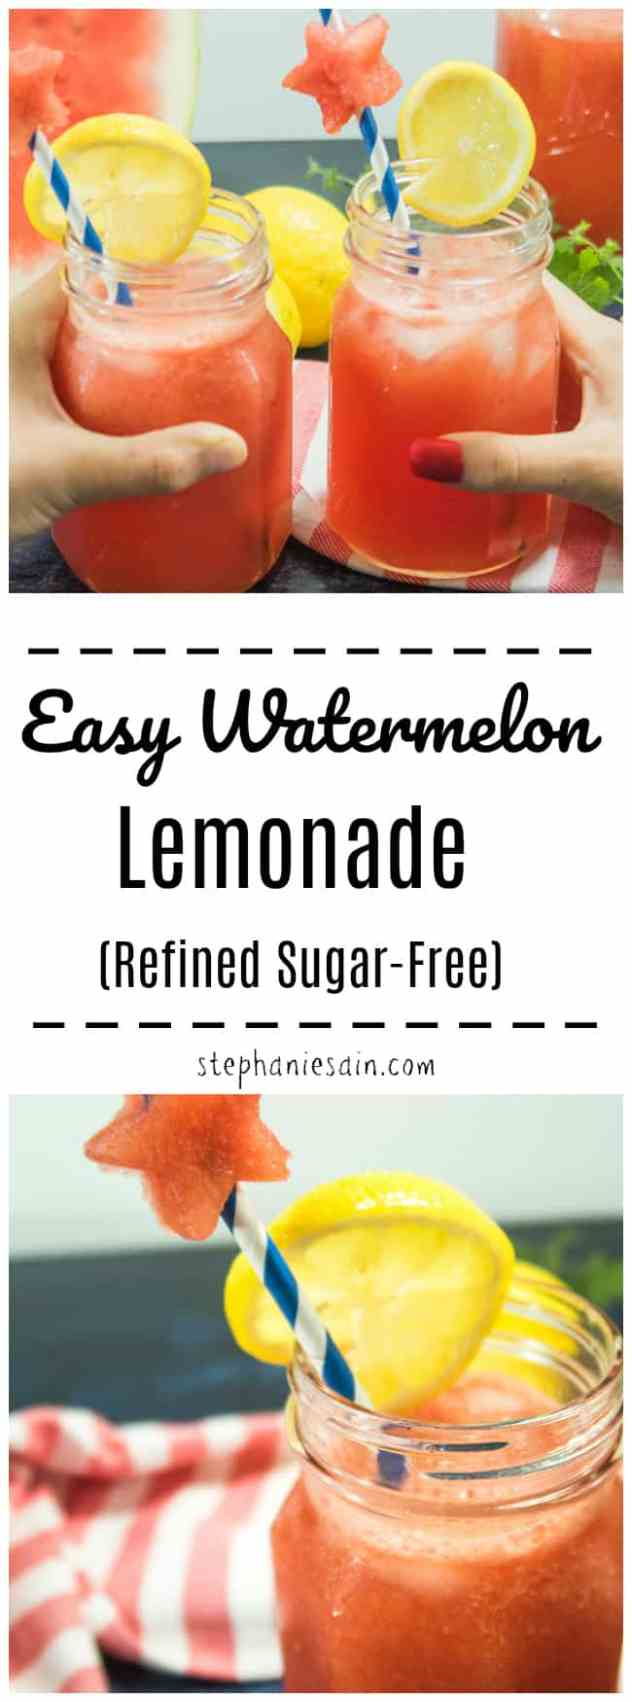 This Easy Watermelon Lemonade only requires 3 ingredients. A tasty, cool refreshing summer beverage. Great for hanging out on hot summer days. No added Refined Sugars & Gluten Free.